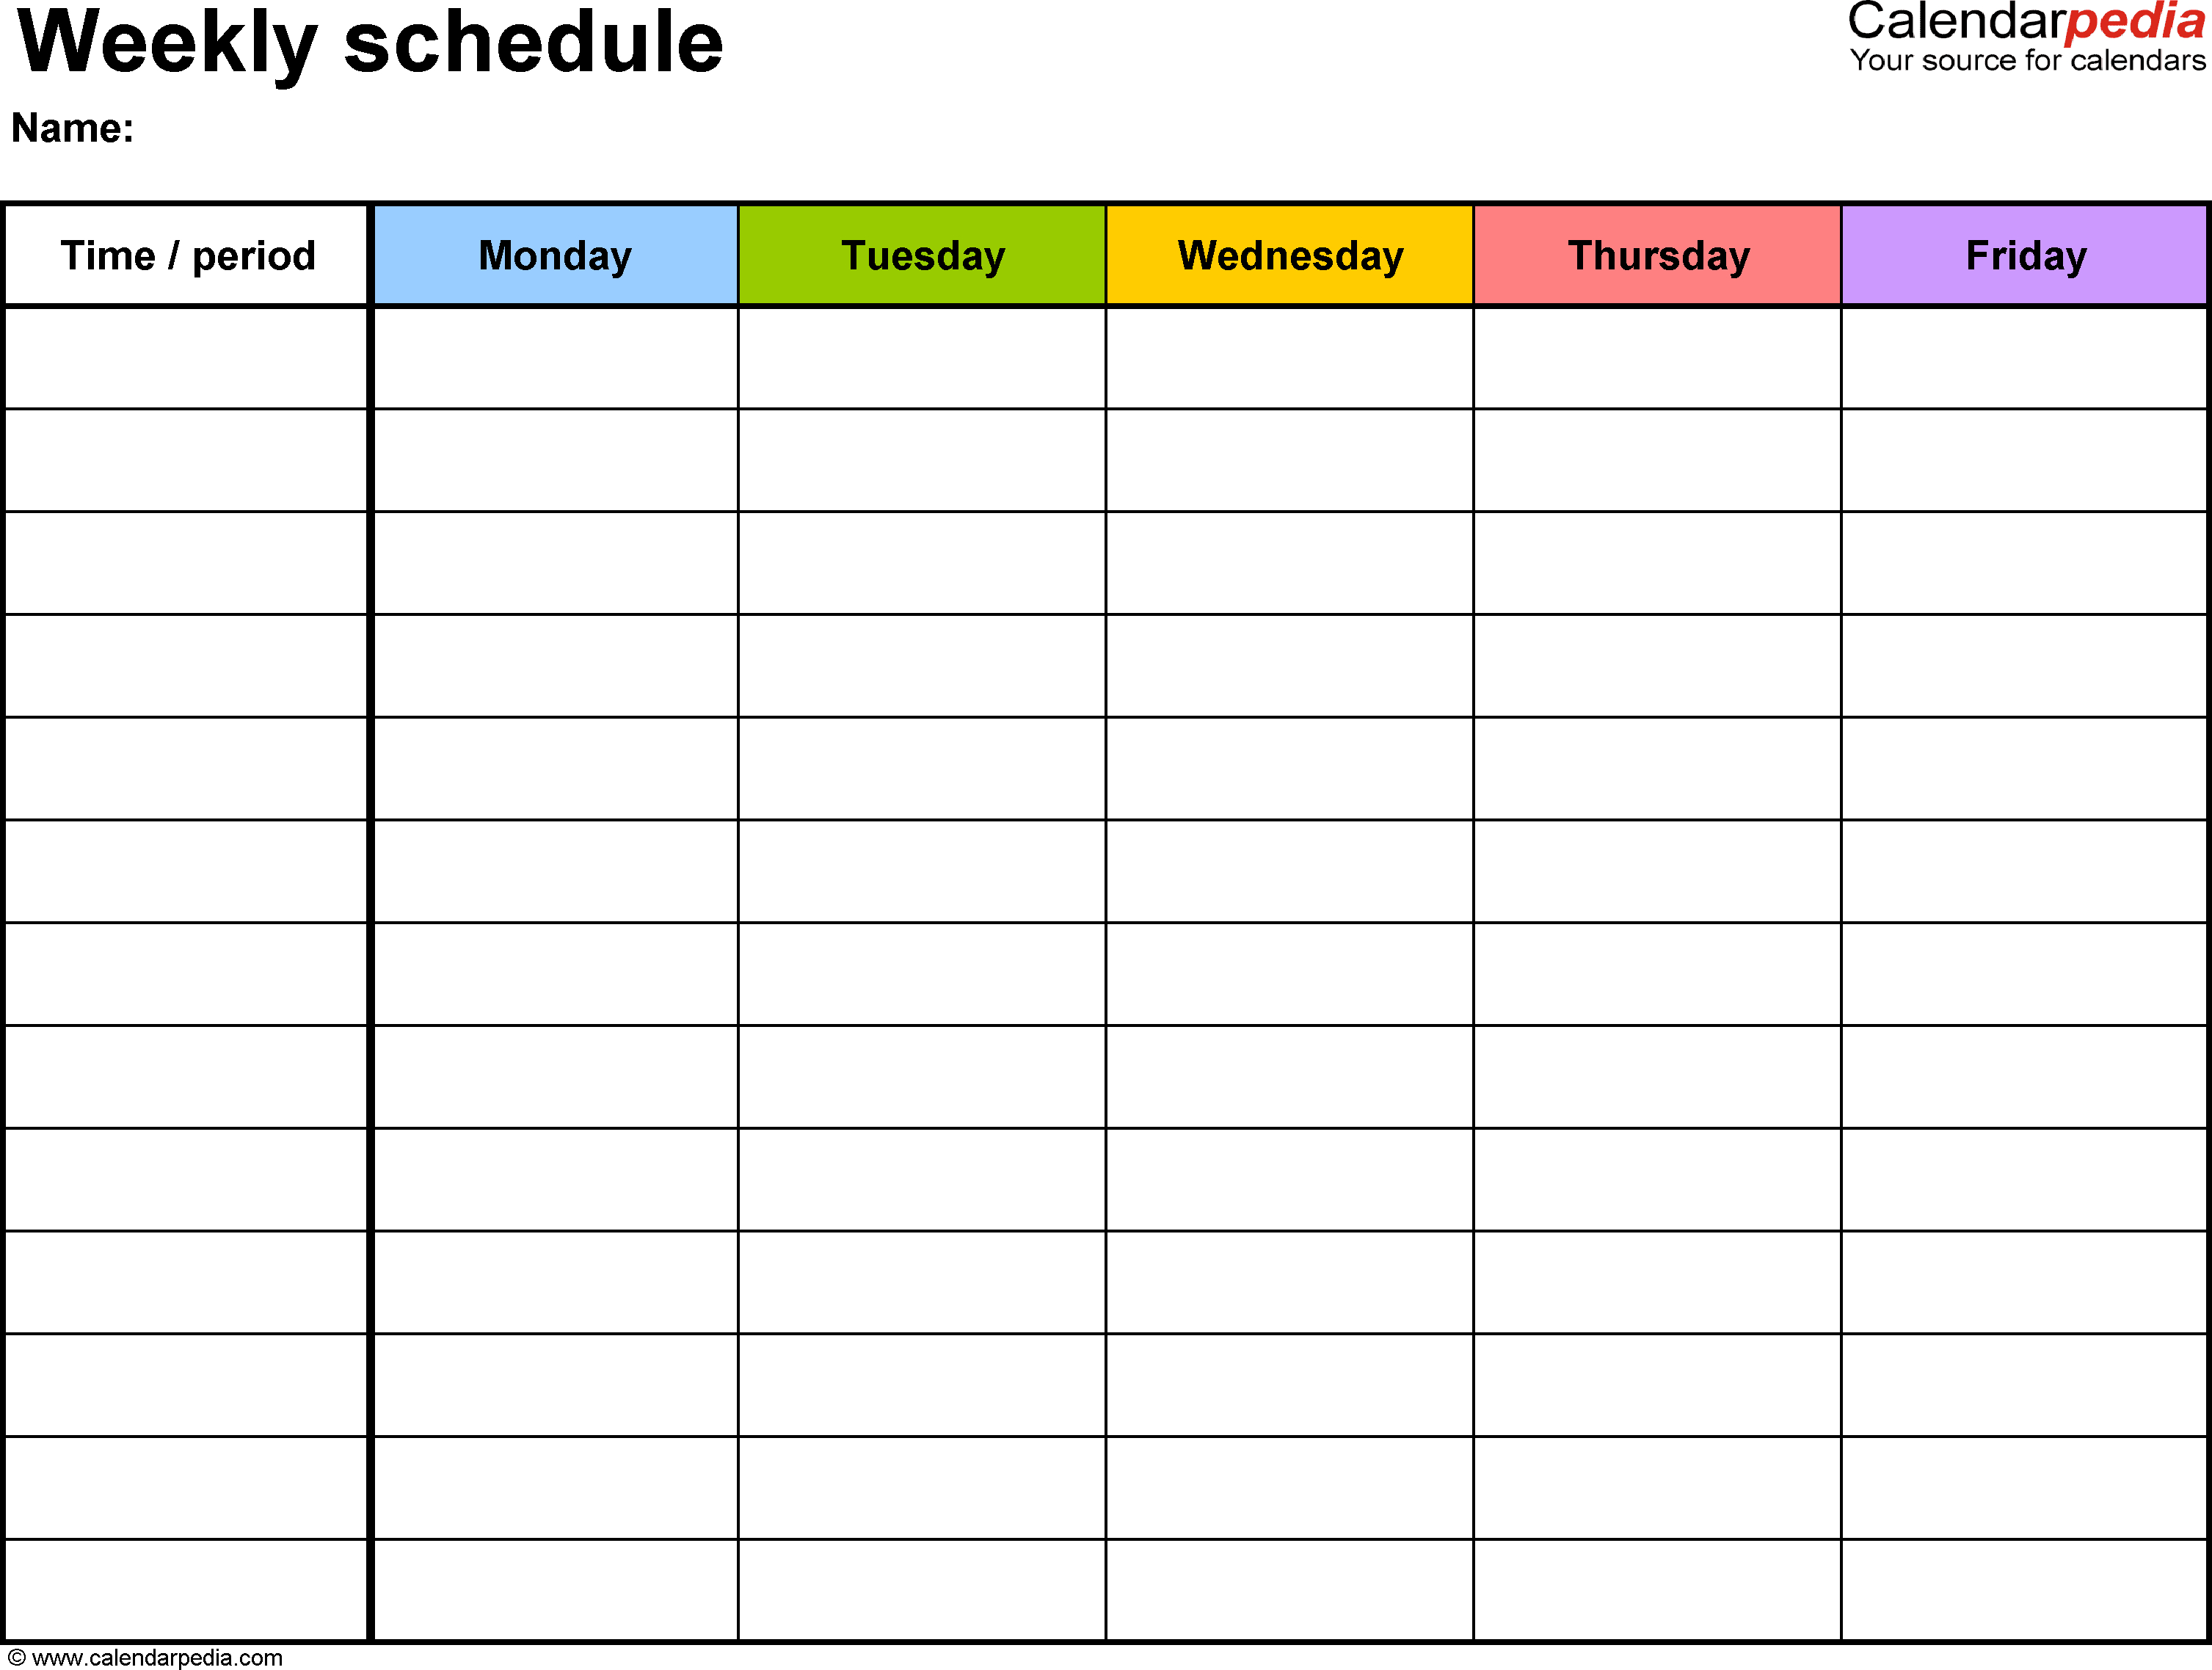 Free Weekly Schedule Templates For Word - 18 Templates within Calendar Template For Work Week